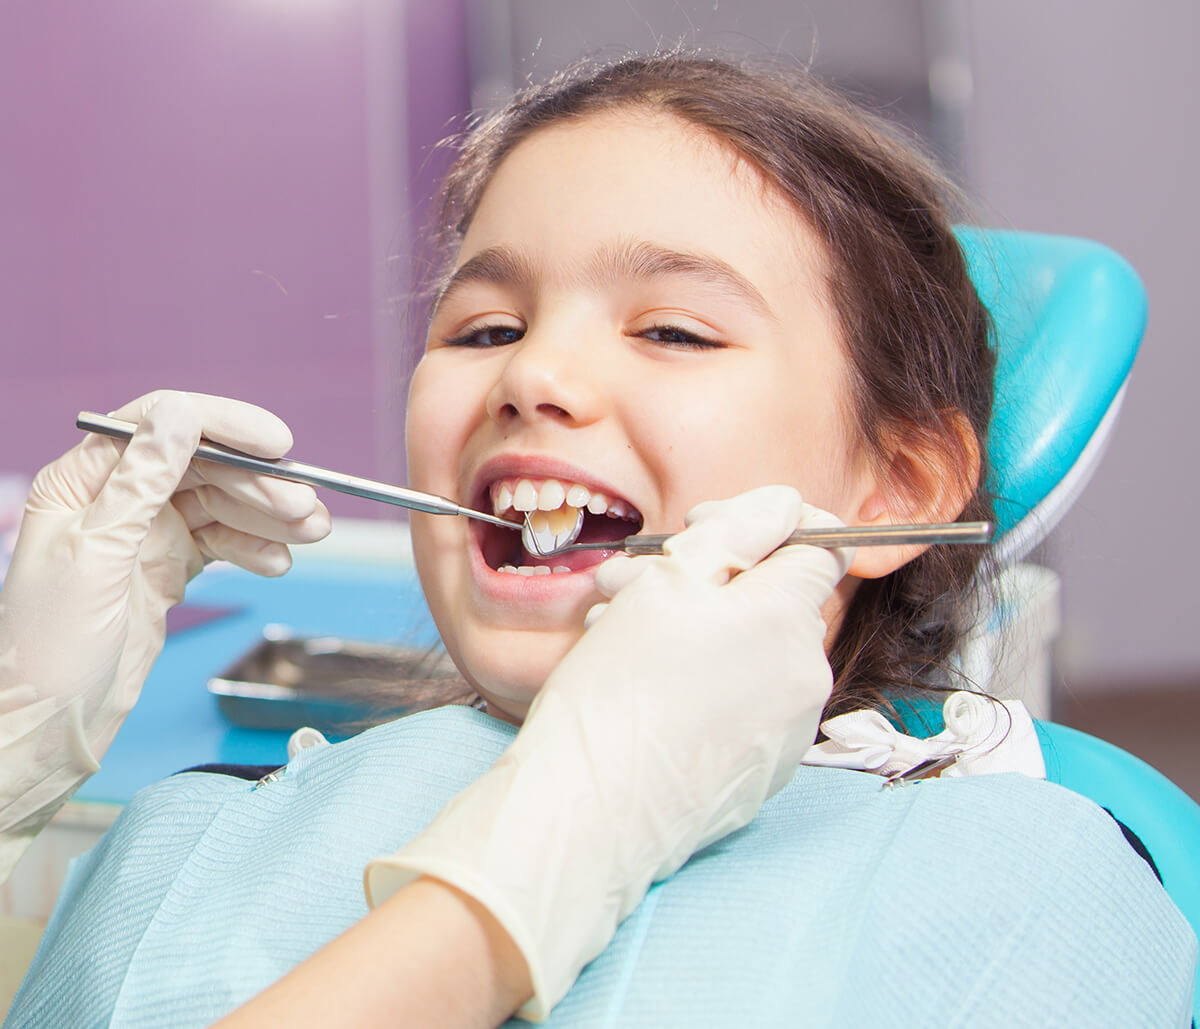 Are You Unsure If Your Child Requires Emergency Dental Care? Child Dentist in Greensboro NC Is Here to Guide You!